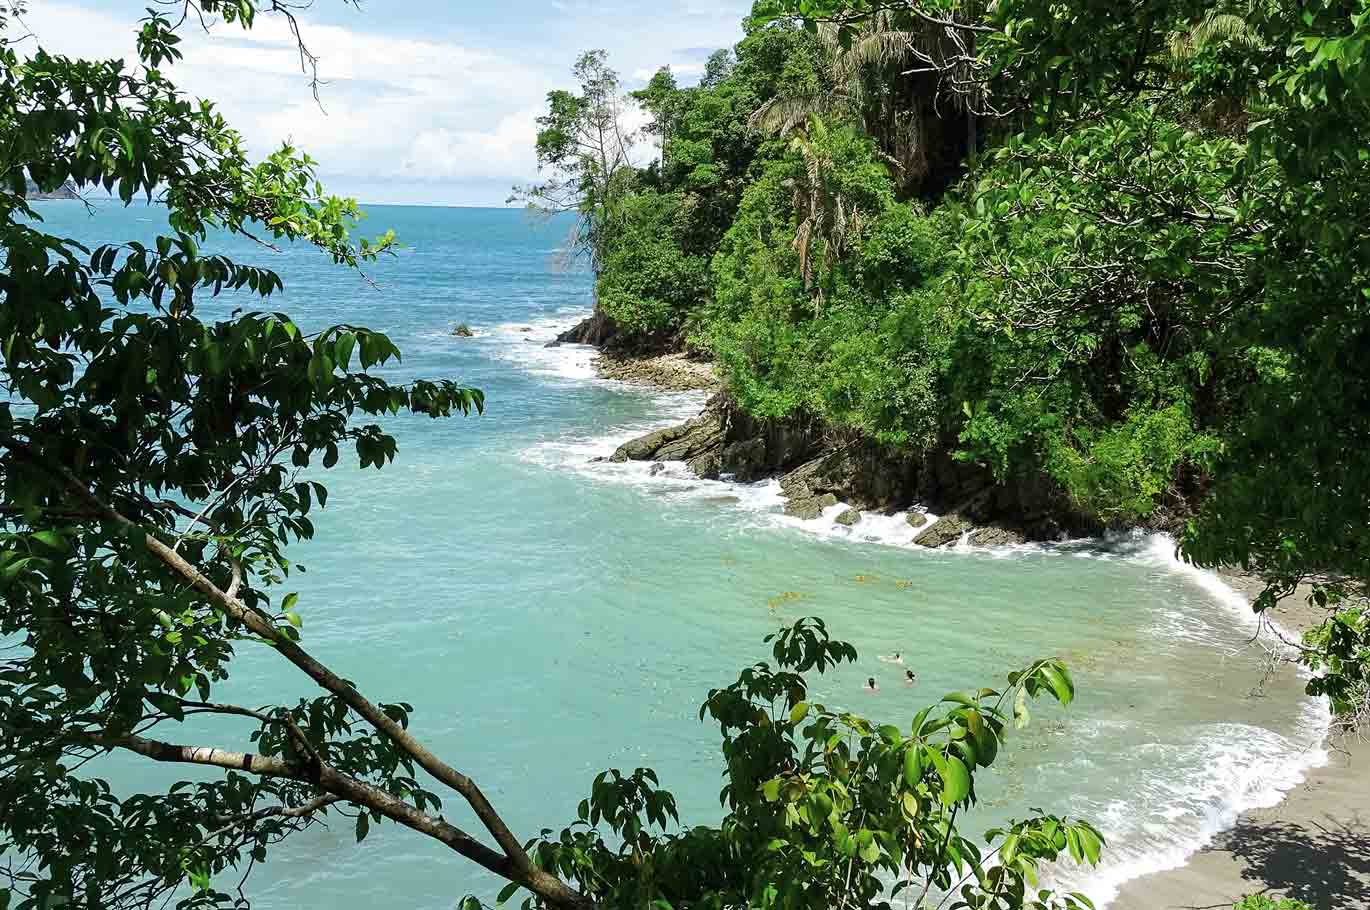 Bucht im Manuel Antonio-Nationalpark, Costa Rica